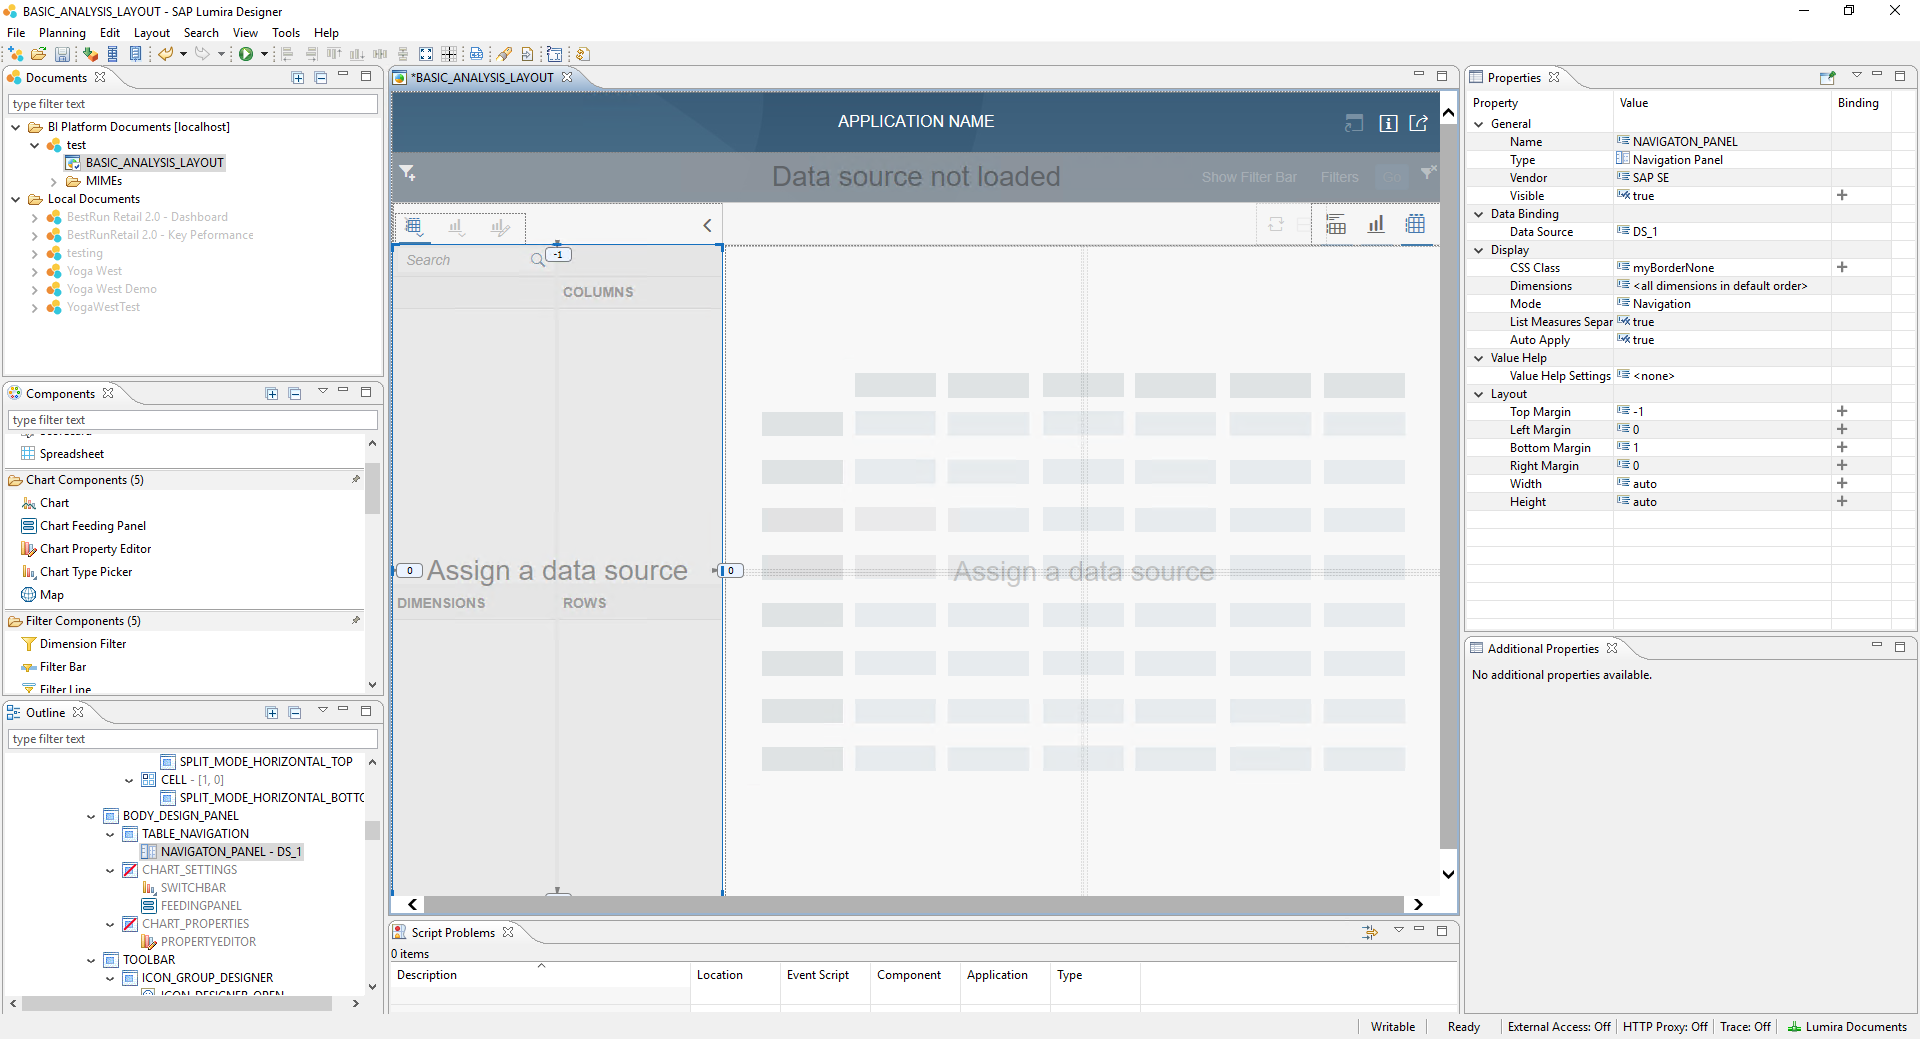 The Lumira Designer developer view